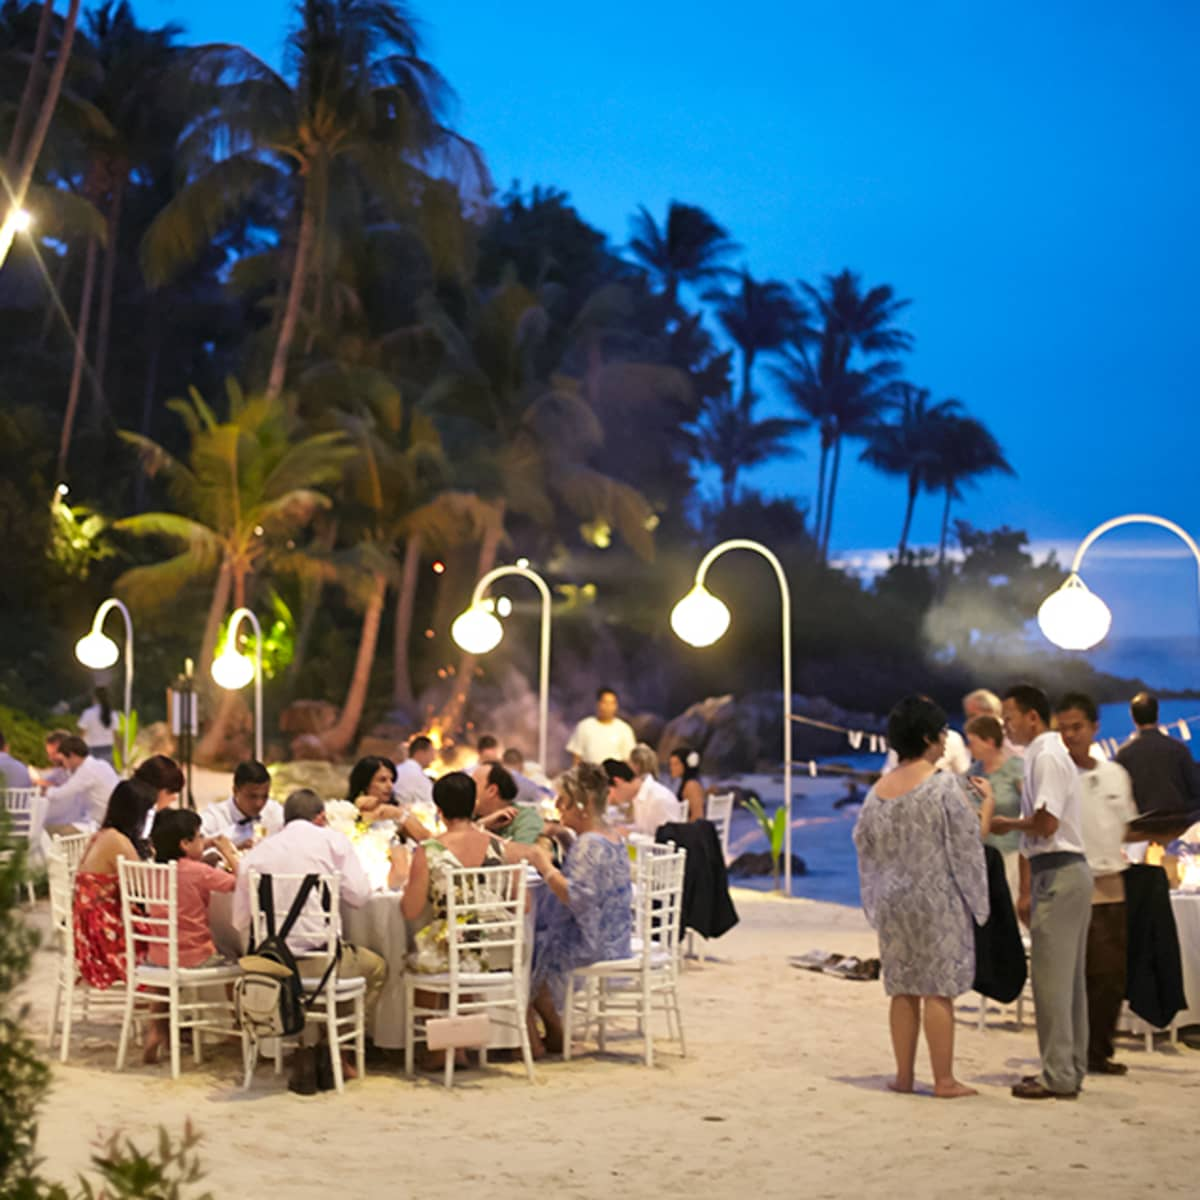 For The Reception At Dusk White Lanterns And Purple Lighting Create A Magical Atmosphere